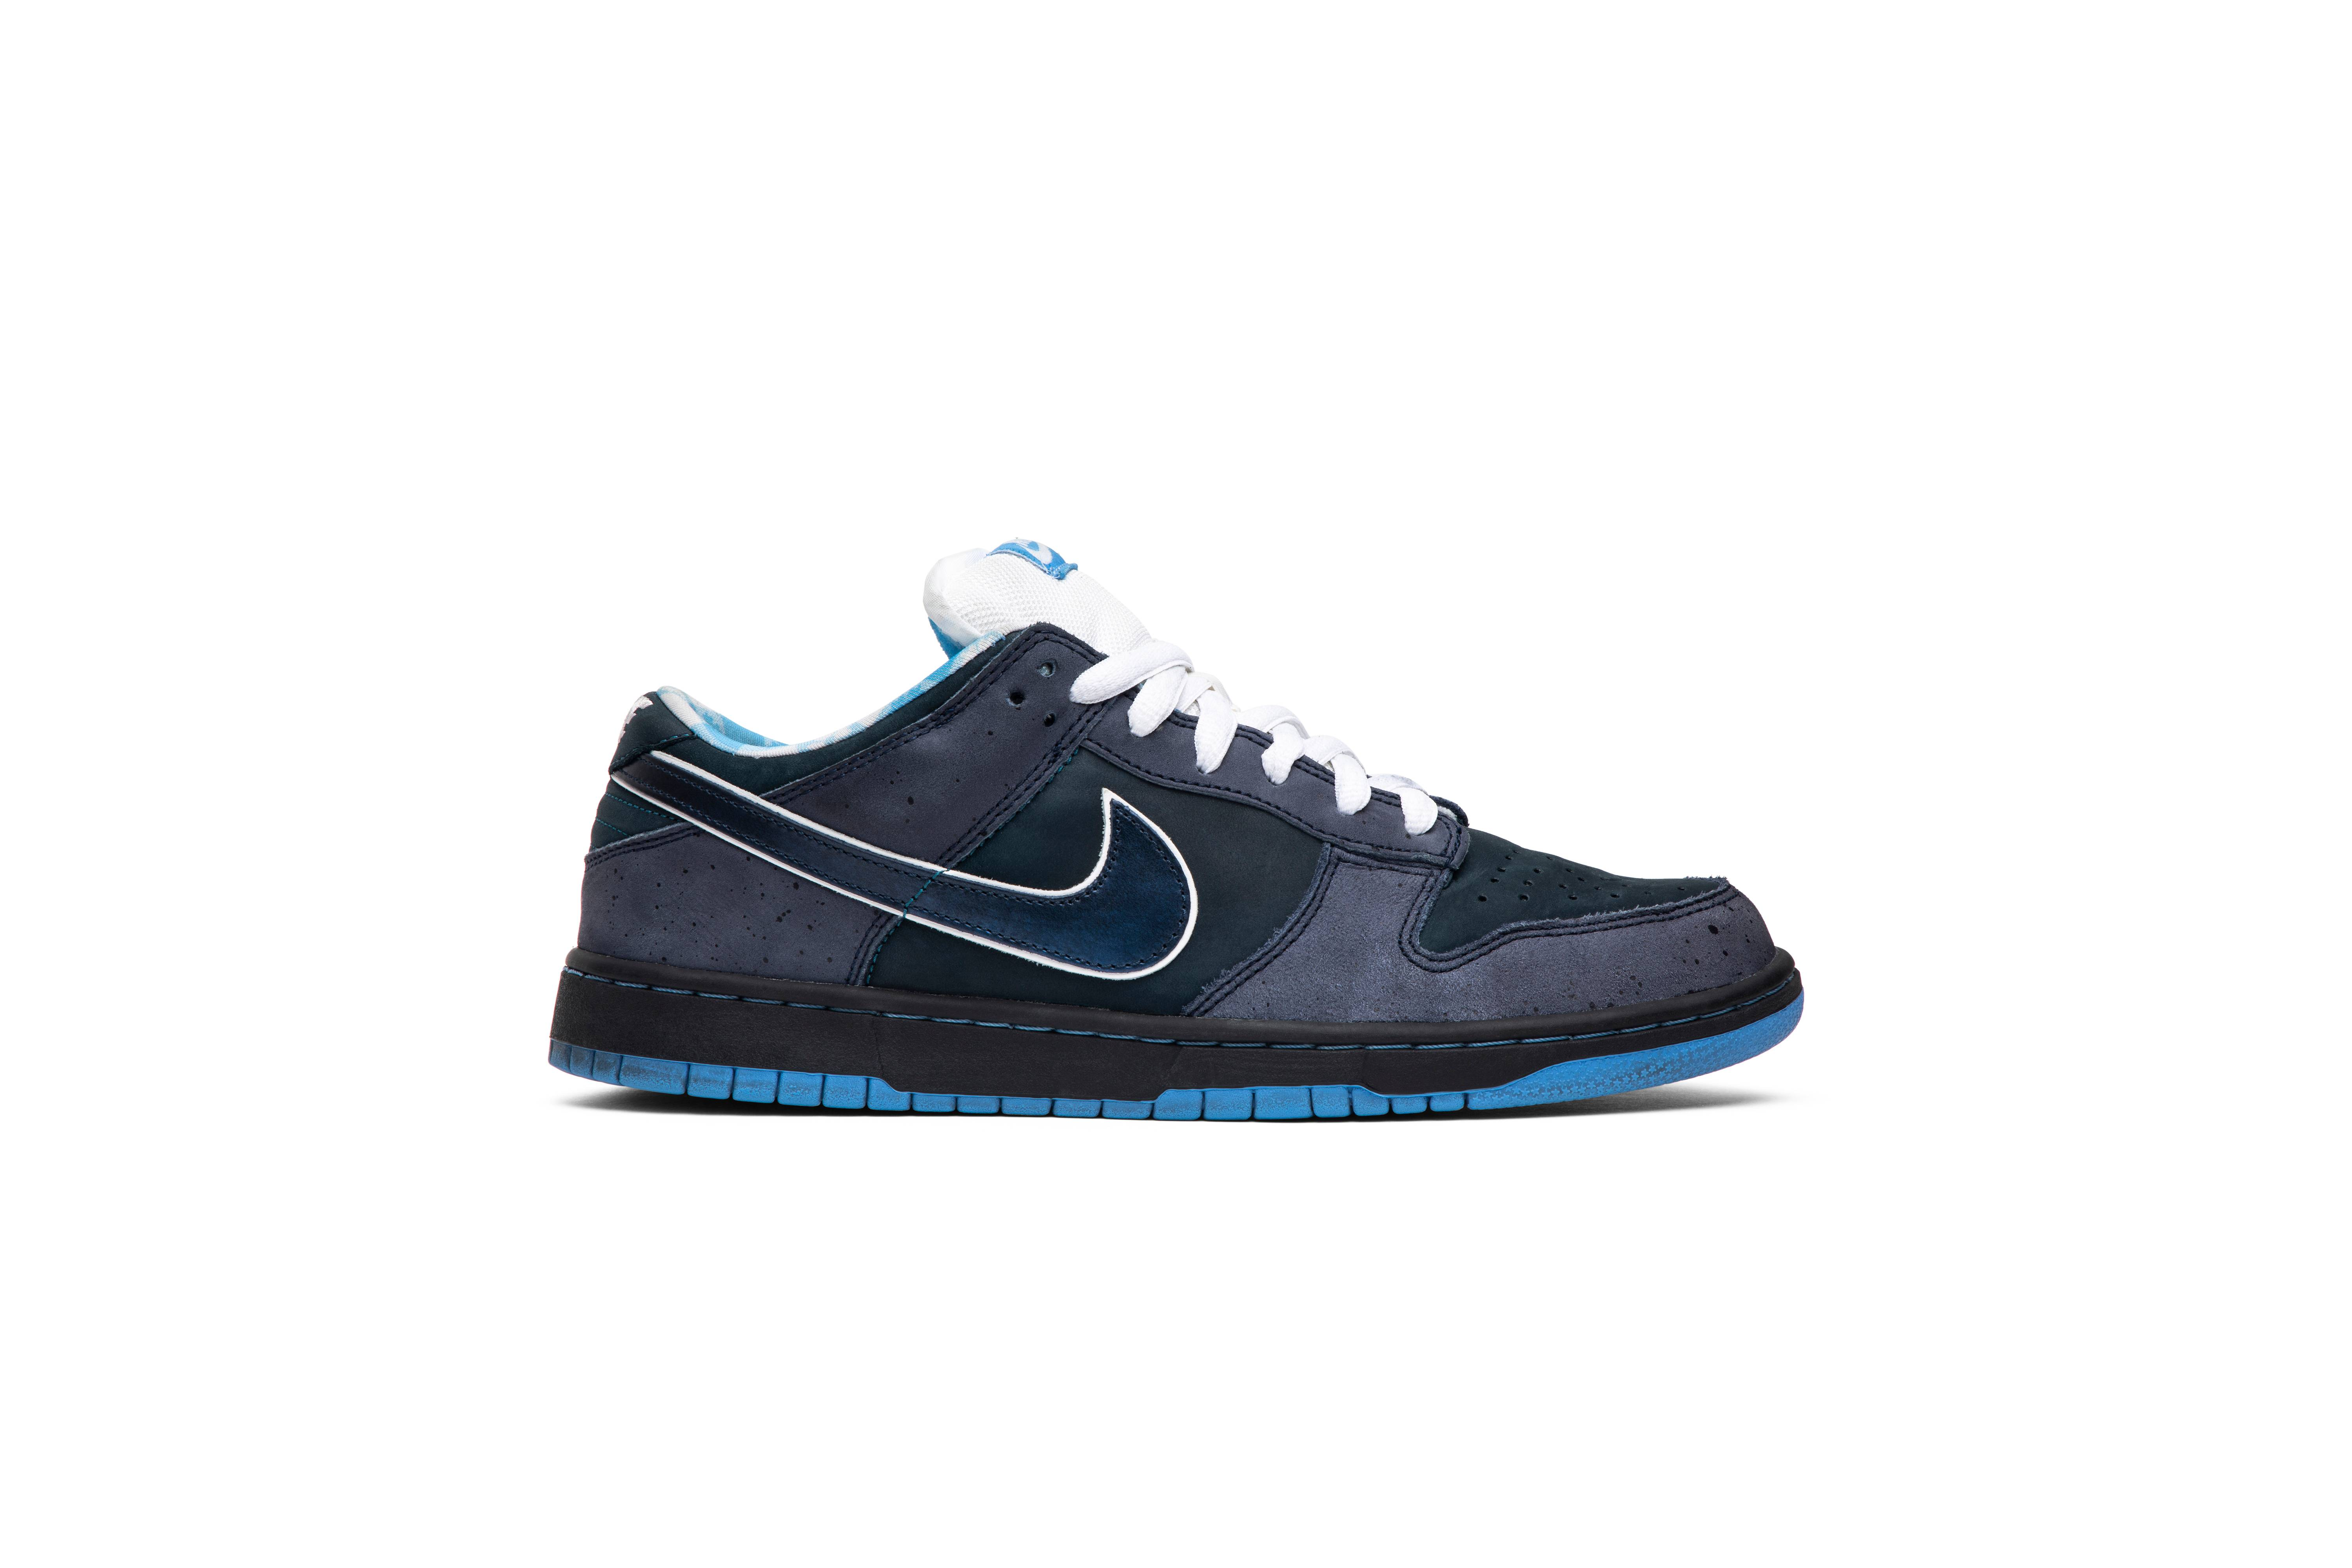 low price nike sb dunk low yellow lobster 28367 d252a bd99a4847